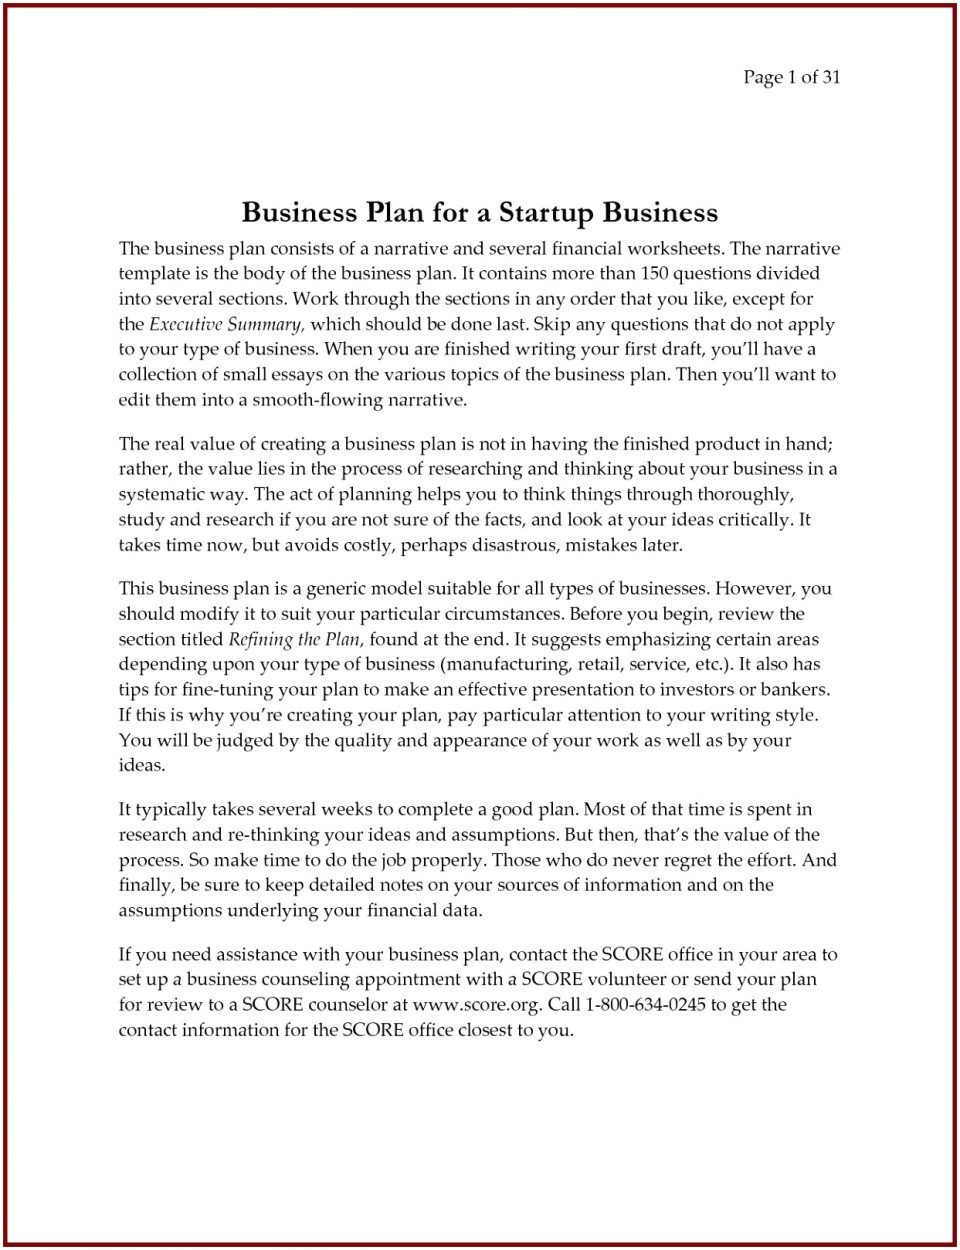 Firearms Business Plan Template Gun Rights Essay A Wwi Vet Writes On Control northern